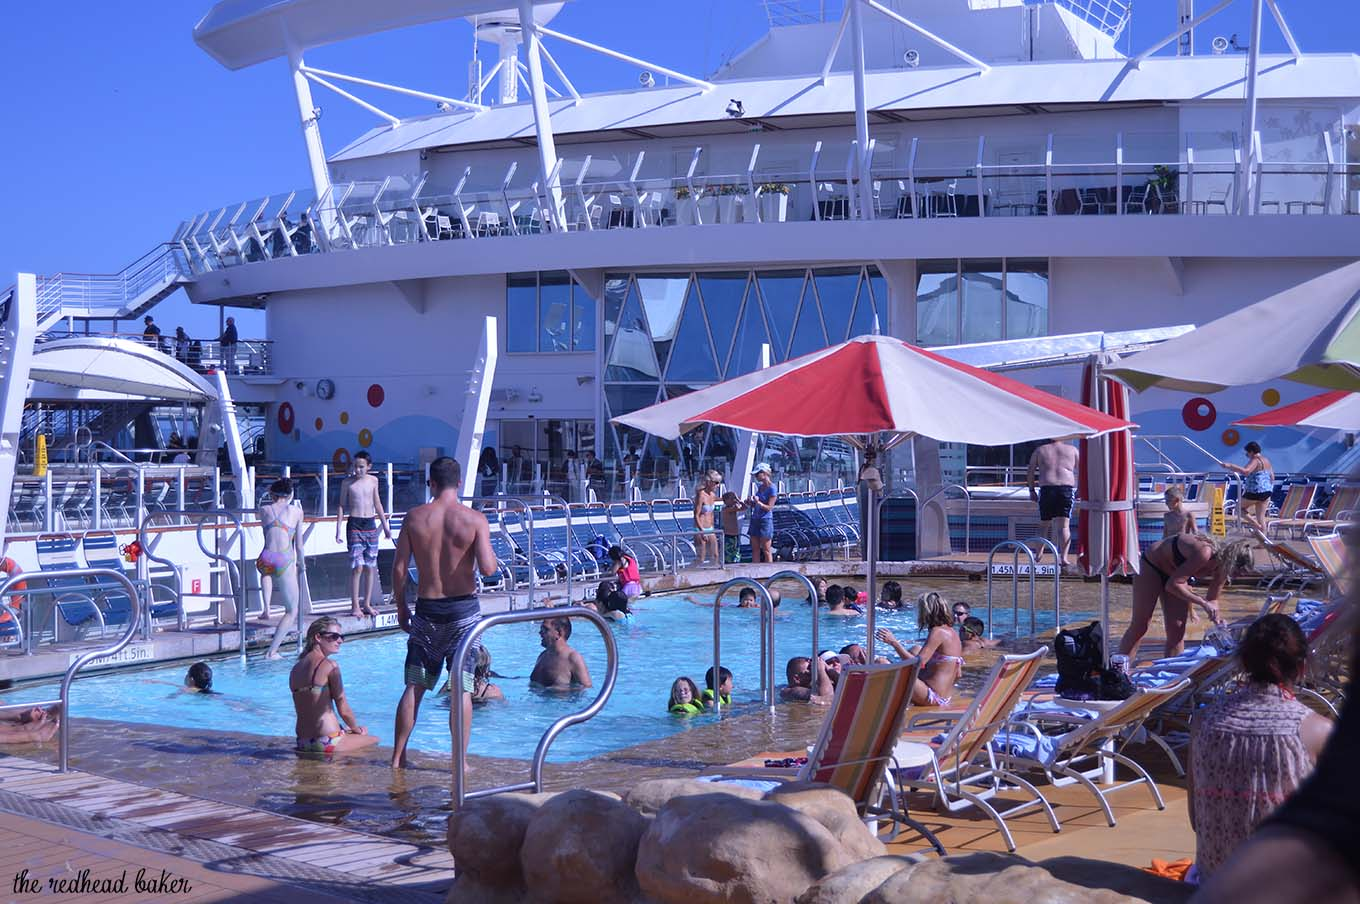 I Recently Took A Caribbean Cruise With My Family On Board Royal Caribbeans Oasis Of The